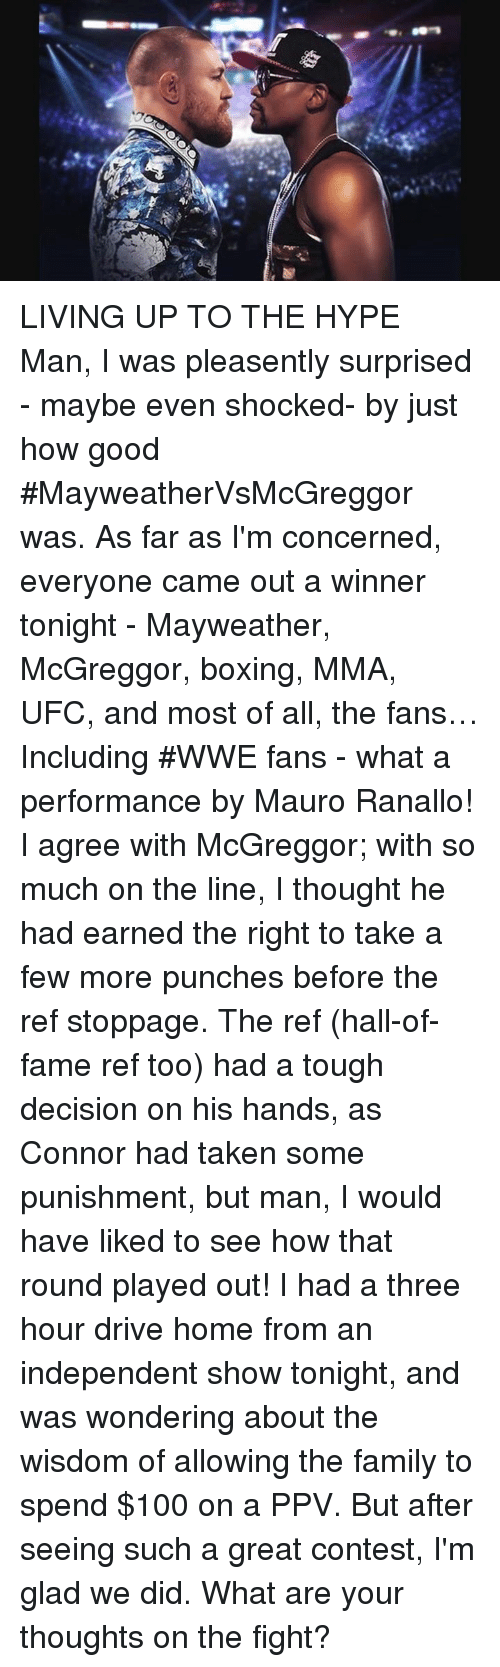 Anaconda, Boxing, and Family: LIVING UP TO THE HYPE Man, I was pleasently surprised - maybe even shocked- by just how good #MayweatherVsMcGreggor was.  As far as I'm concerned, everyone came out a winner tonight - Mayweather, McGreggor, boxing, MMA, UFC, and  most of all, the fans… Including #WWE fans -  what a performance by Mauro Ranallo! I agree with McGreggor; with so much on the line,  I thought he had earned the right to take a few more punches before the ref stoppage. The ref (hall-of-fame ref too) had a tough decision on his hands, as Connor had taken some punishment, but man,  I would have liked to see how that round played out!   I had a three hour drive home from an independent show tonight, and was  wondering about the wisdom of allowing the family to spend $100 on a PPV.  But after seeing such a great contest, I'm glad we did.  What are your thoughts on the fight?